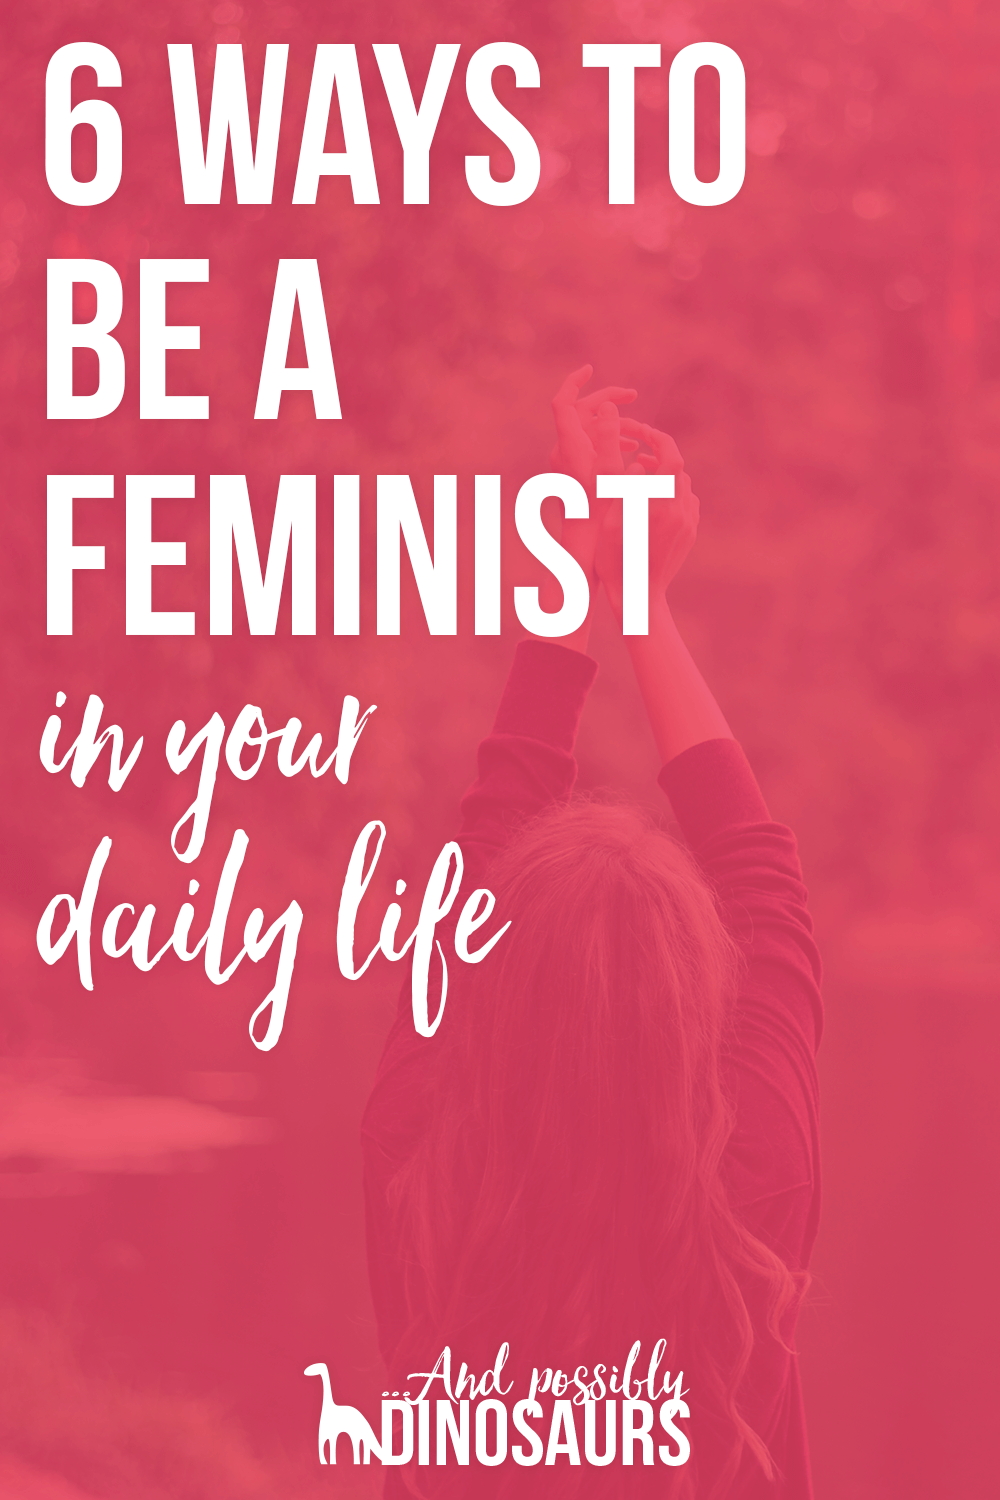 Being a feminist is really important, but it can be really hard. When do you speak up? How do you learn more? Check out this list of six ways to be a feminist in your daily life to find out!